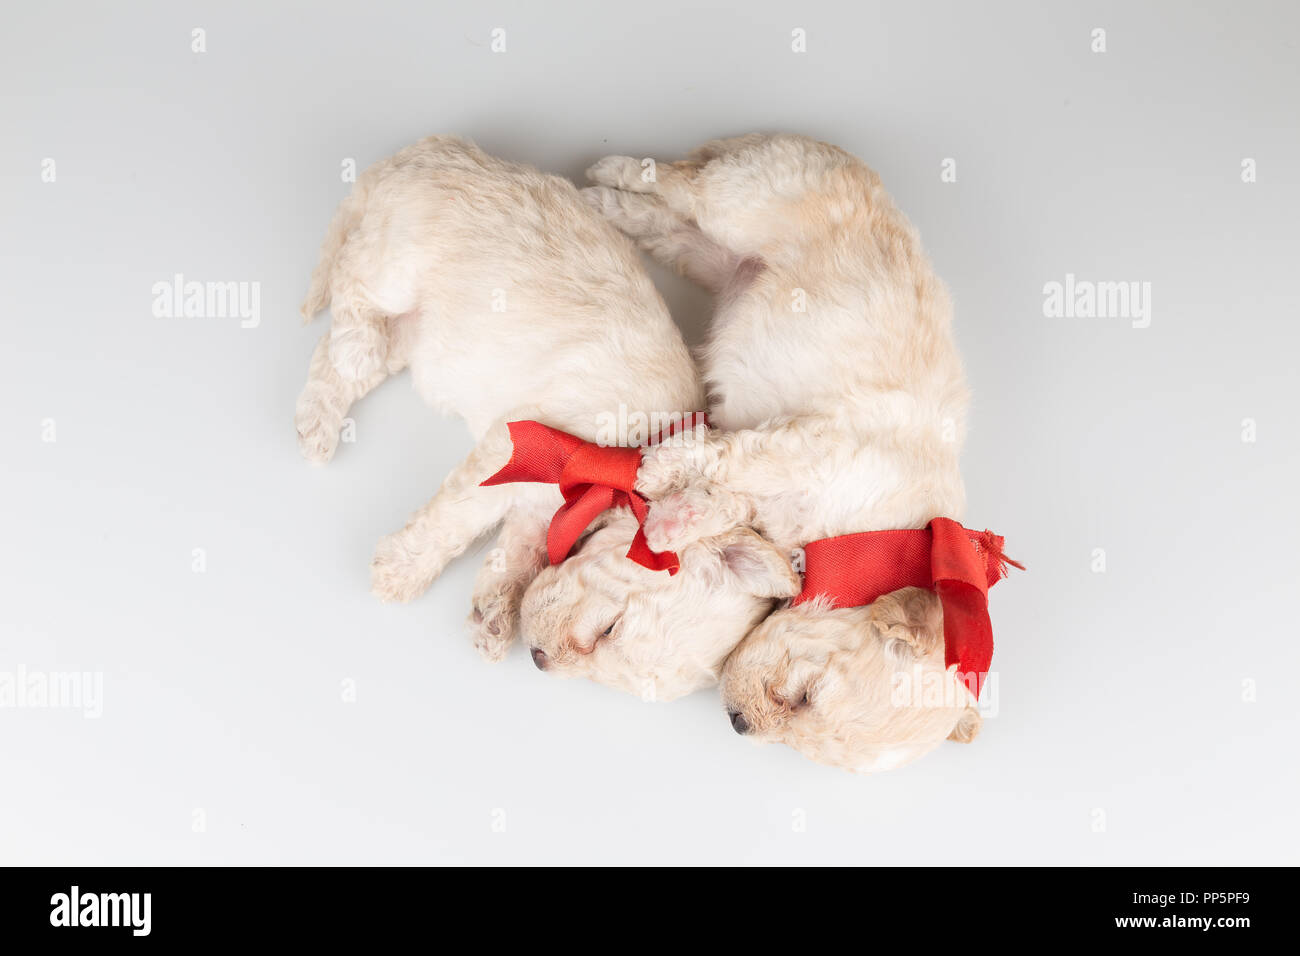 Cute puppies sleeping top view - Stock Image